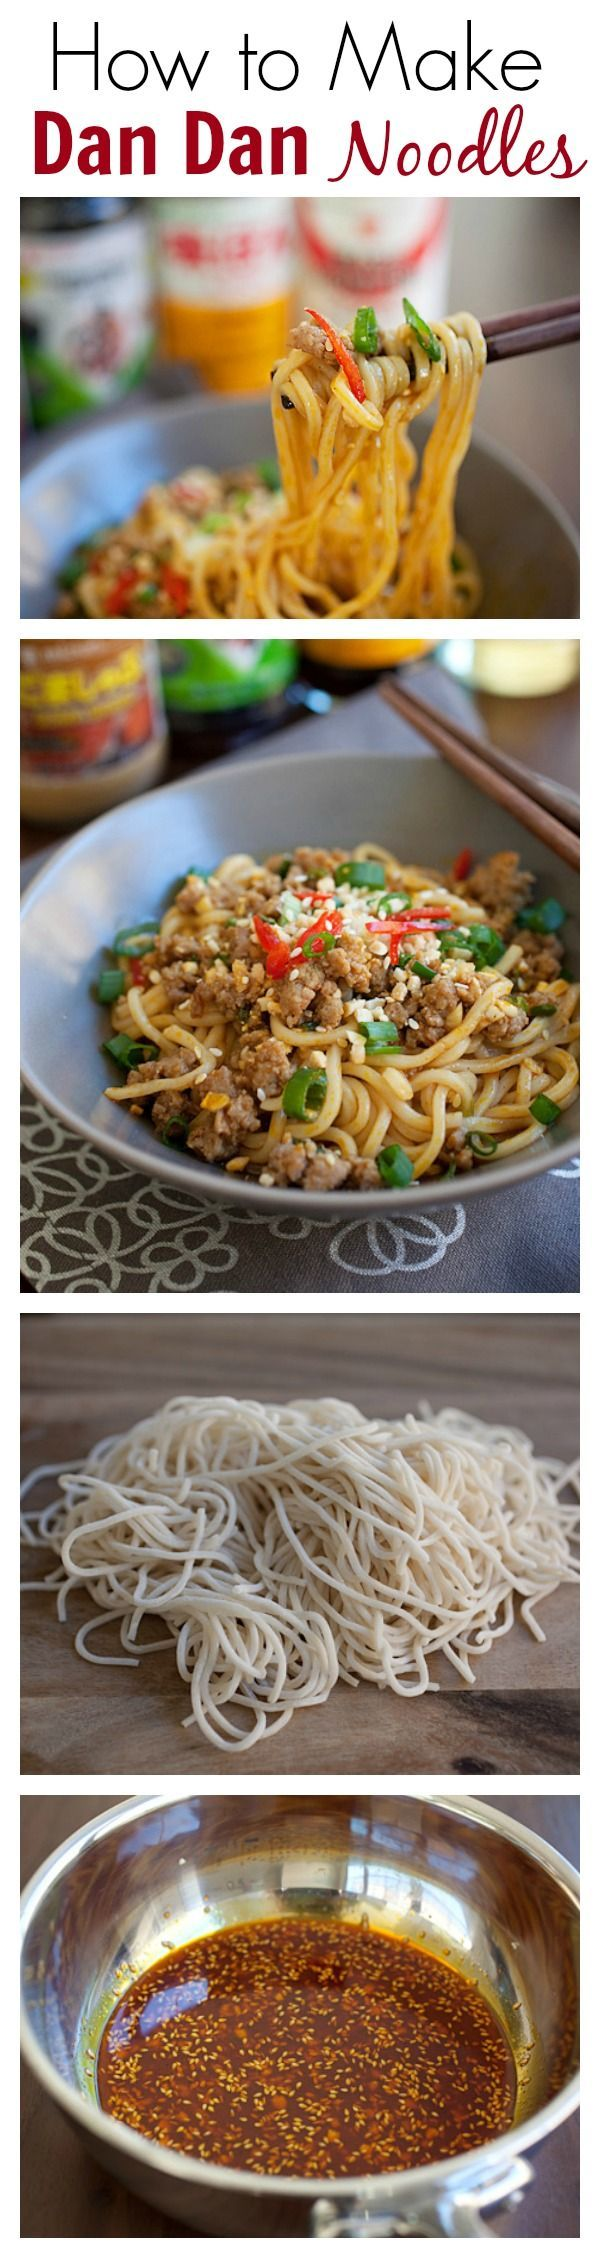 How to Make Sichuan Dan Dan Noodles by rasamalaysia: Super delicious - spicy, sour and savory.